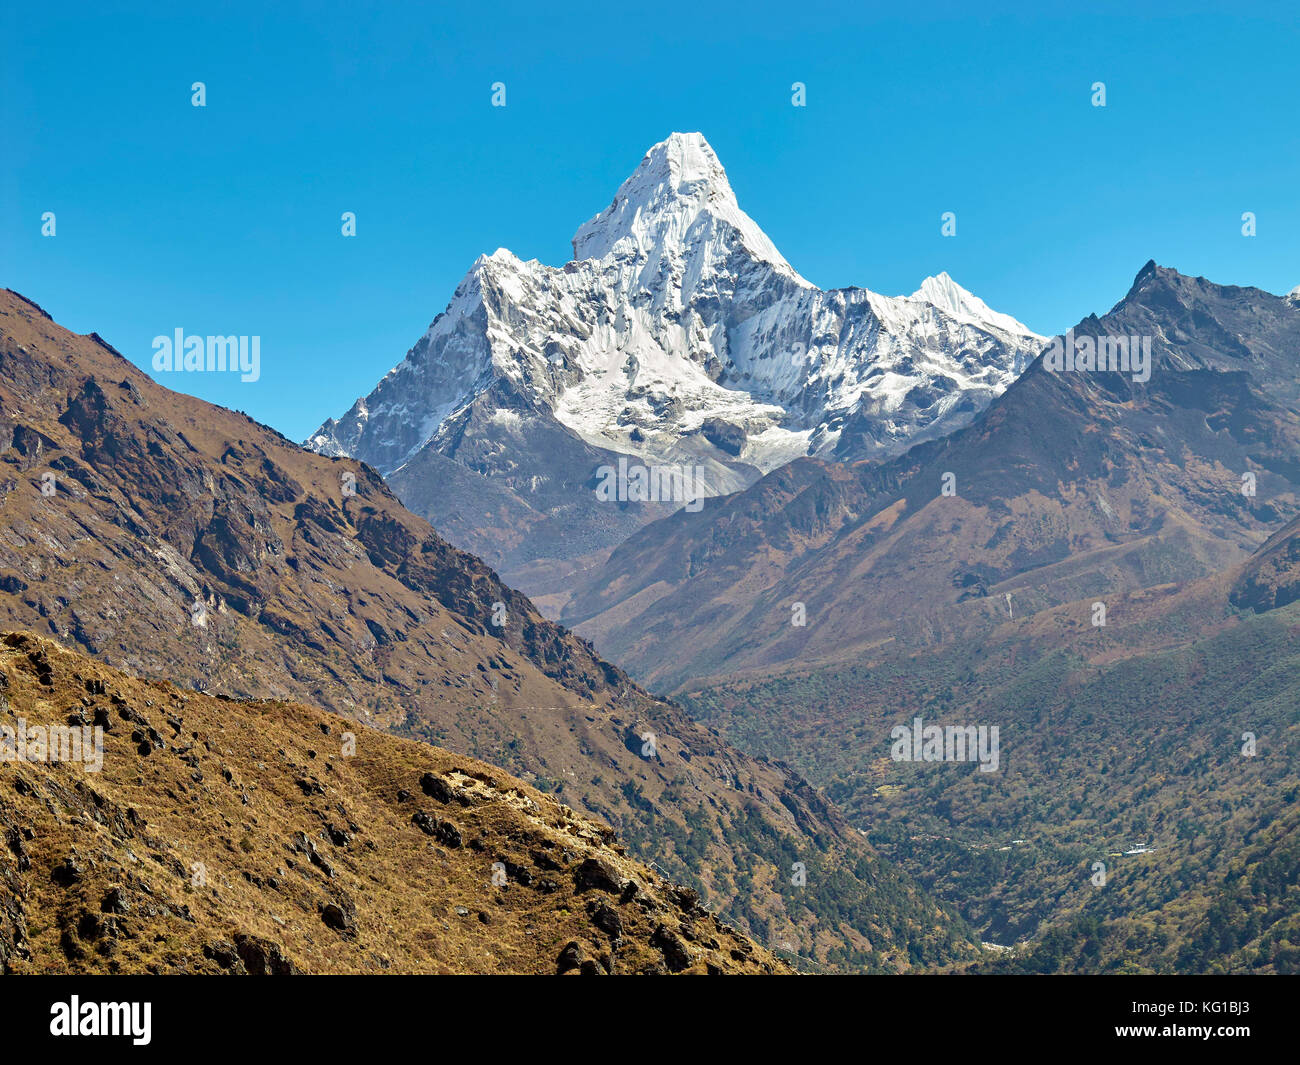 Ama Dablam Mountain. The main peak is 6812 meters, Everest Region of the Himalayas, Nepal. - Stock Image